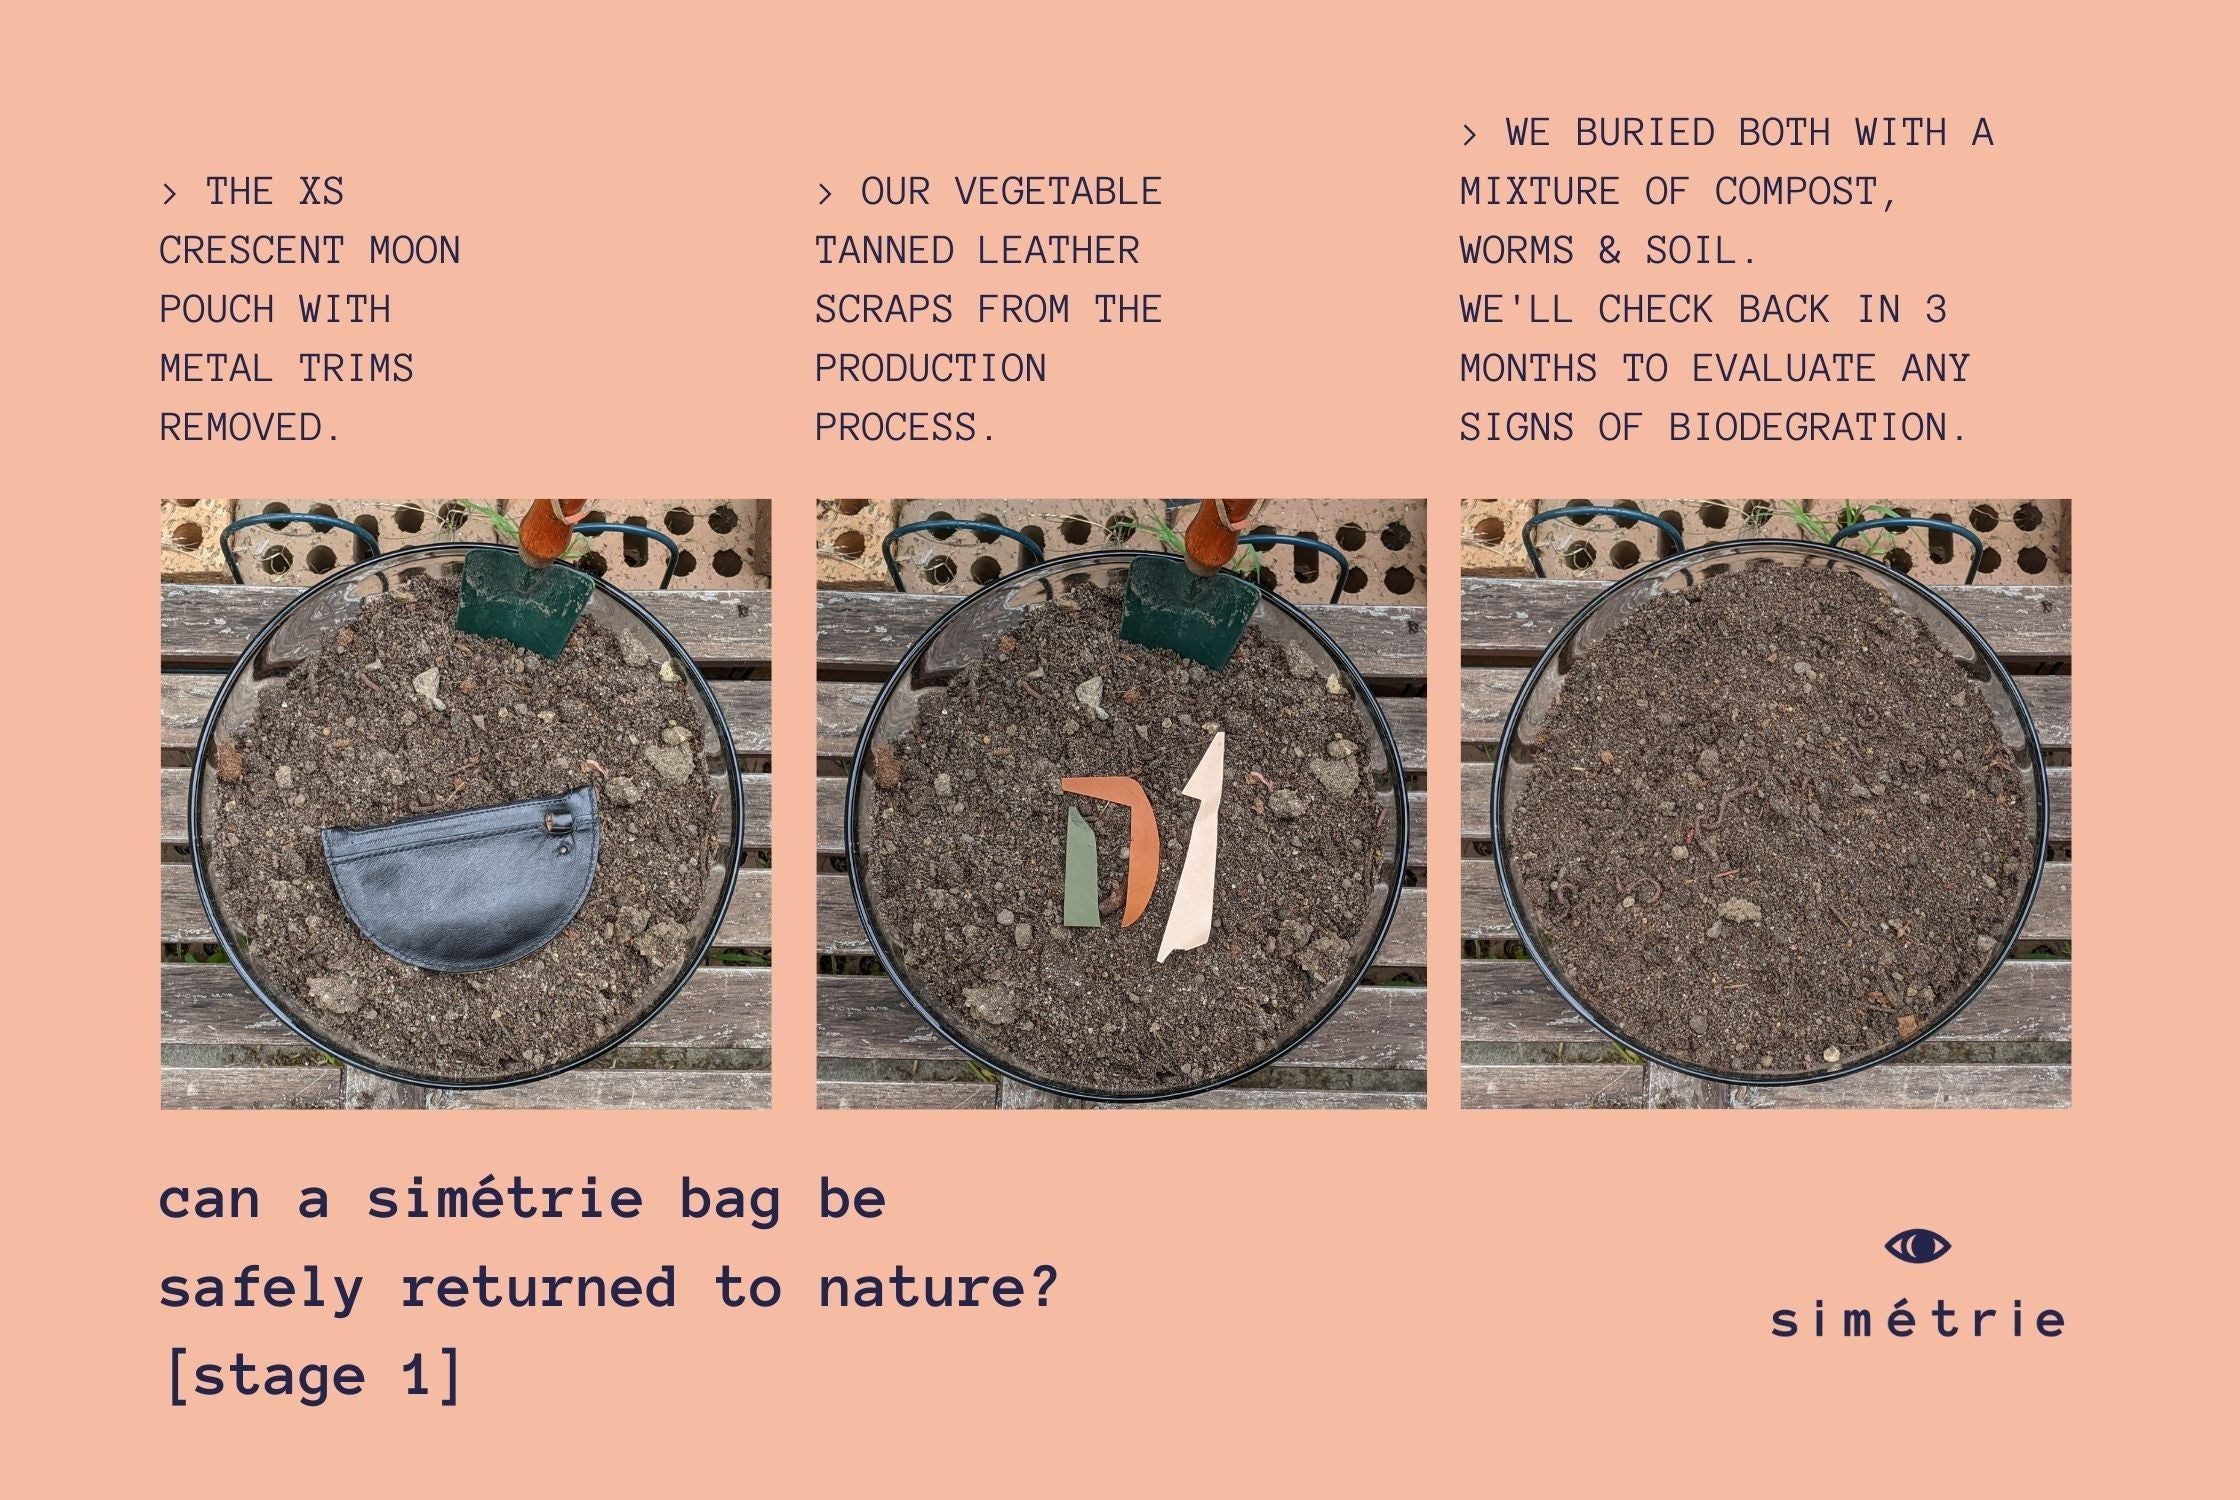 can a simétrie leather bag safely biodegrade